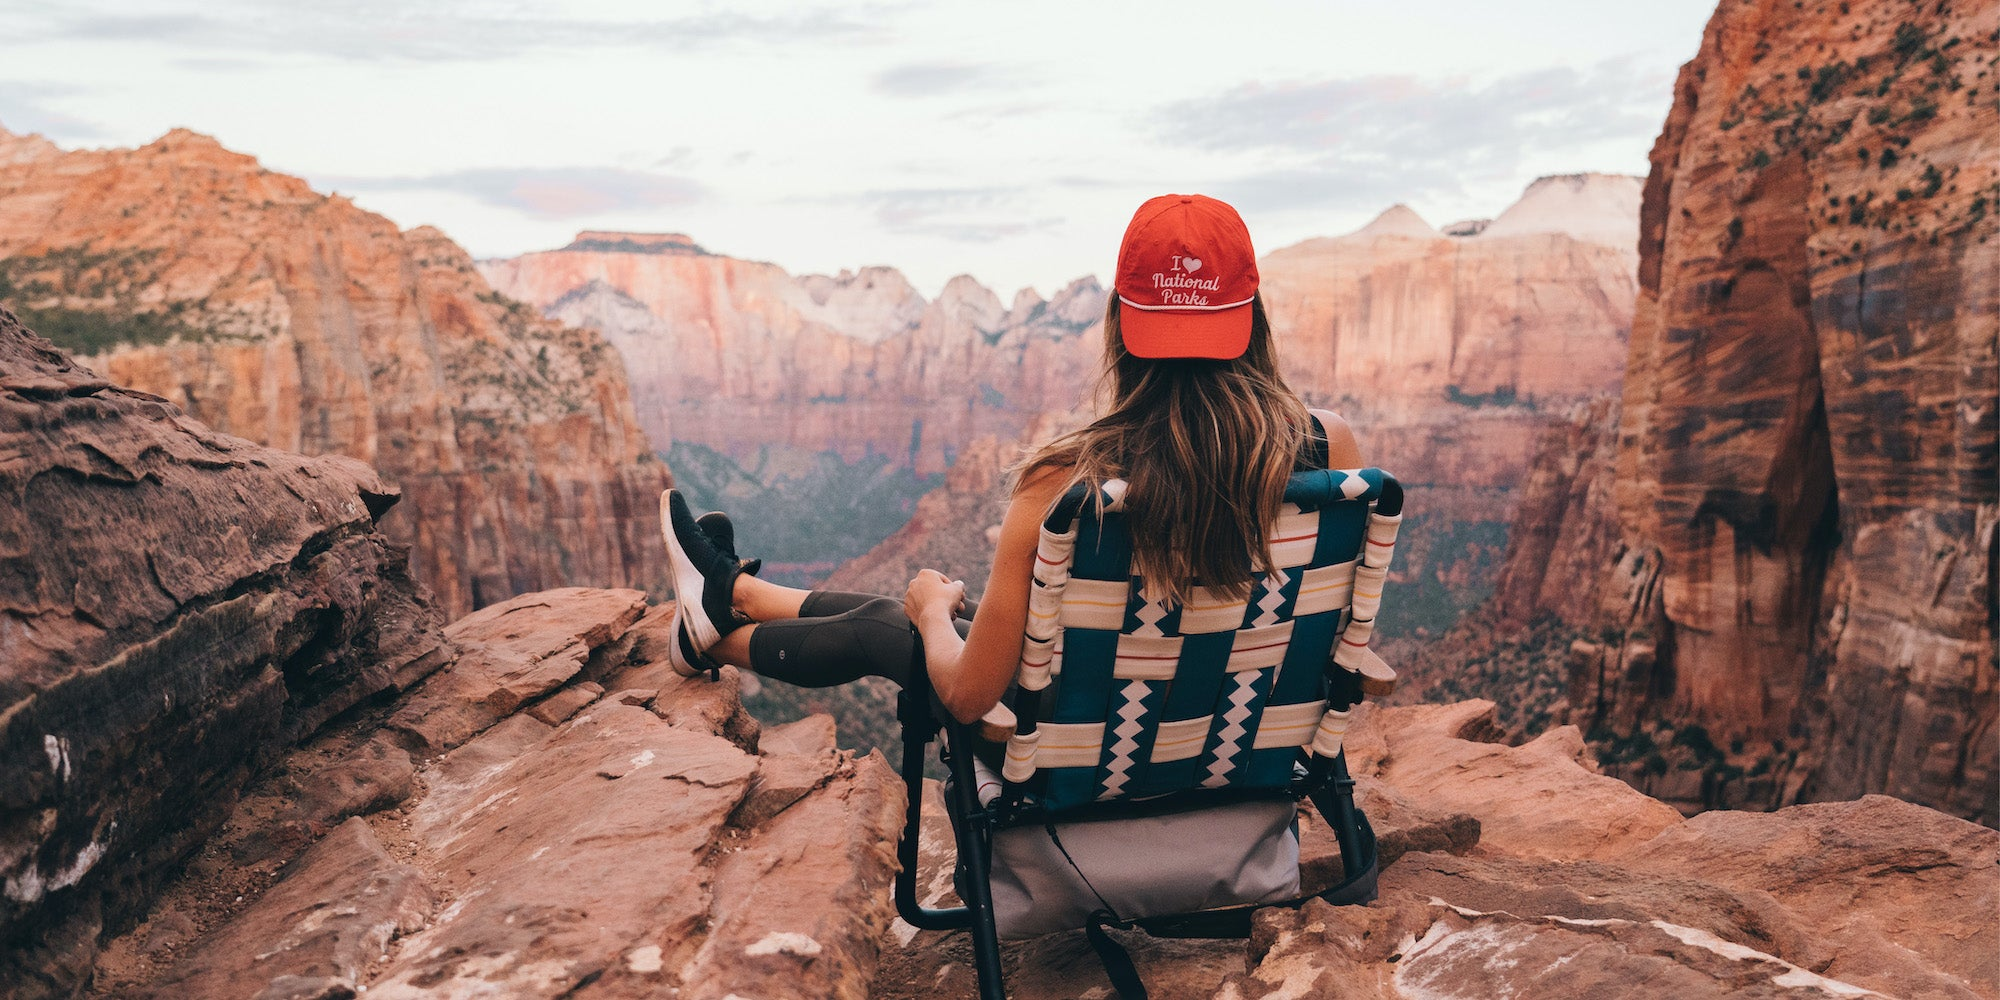 Parkit Voyager outdoor chair being used at Zion National Park